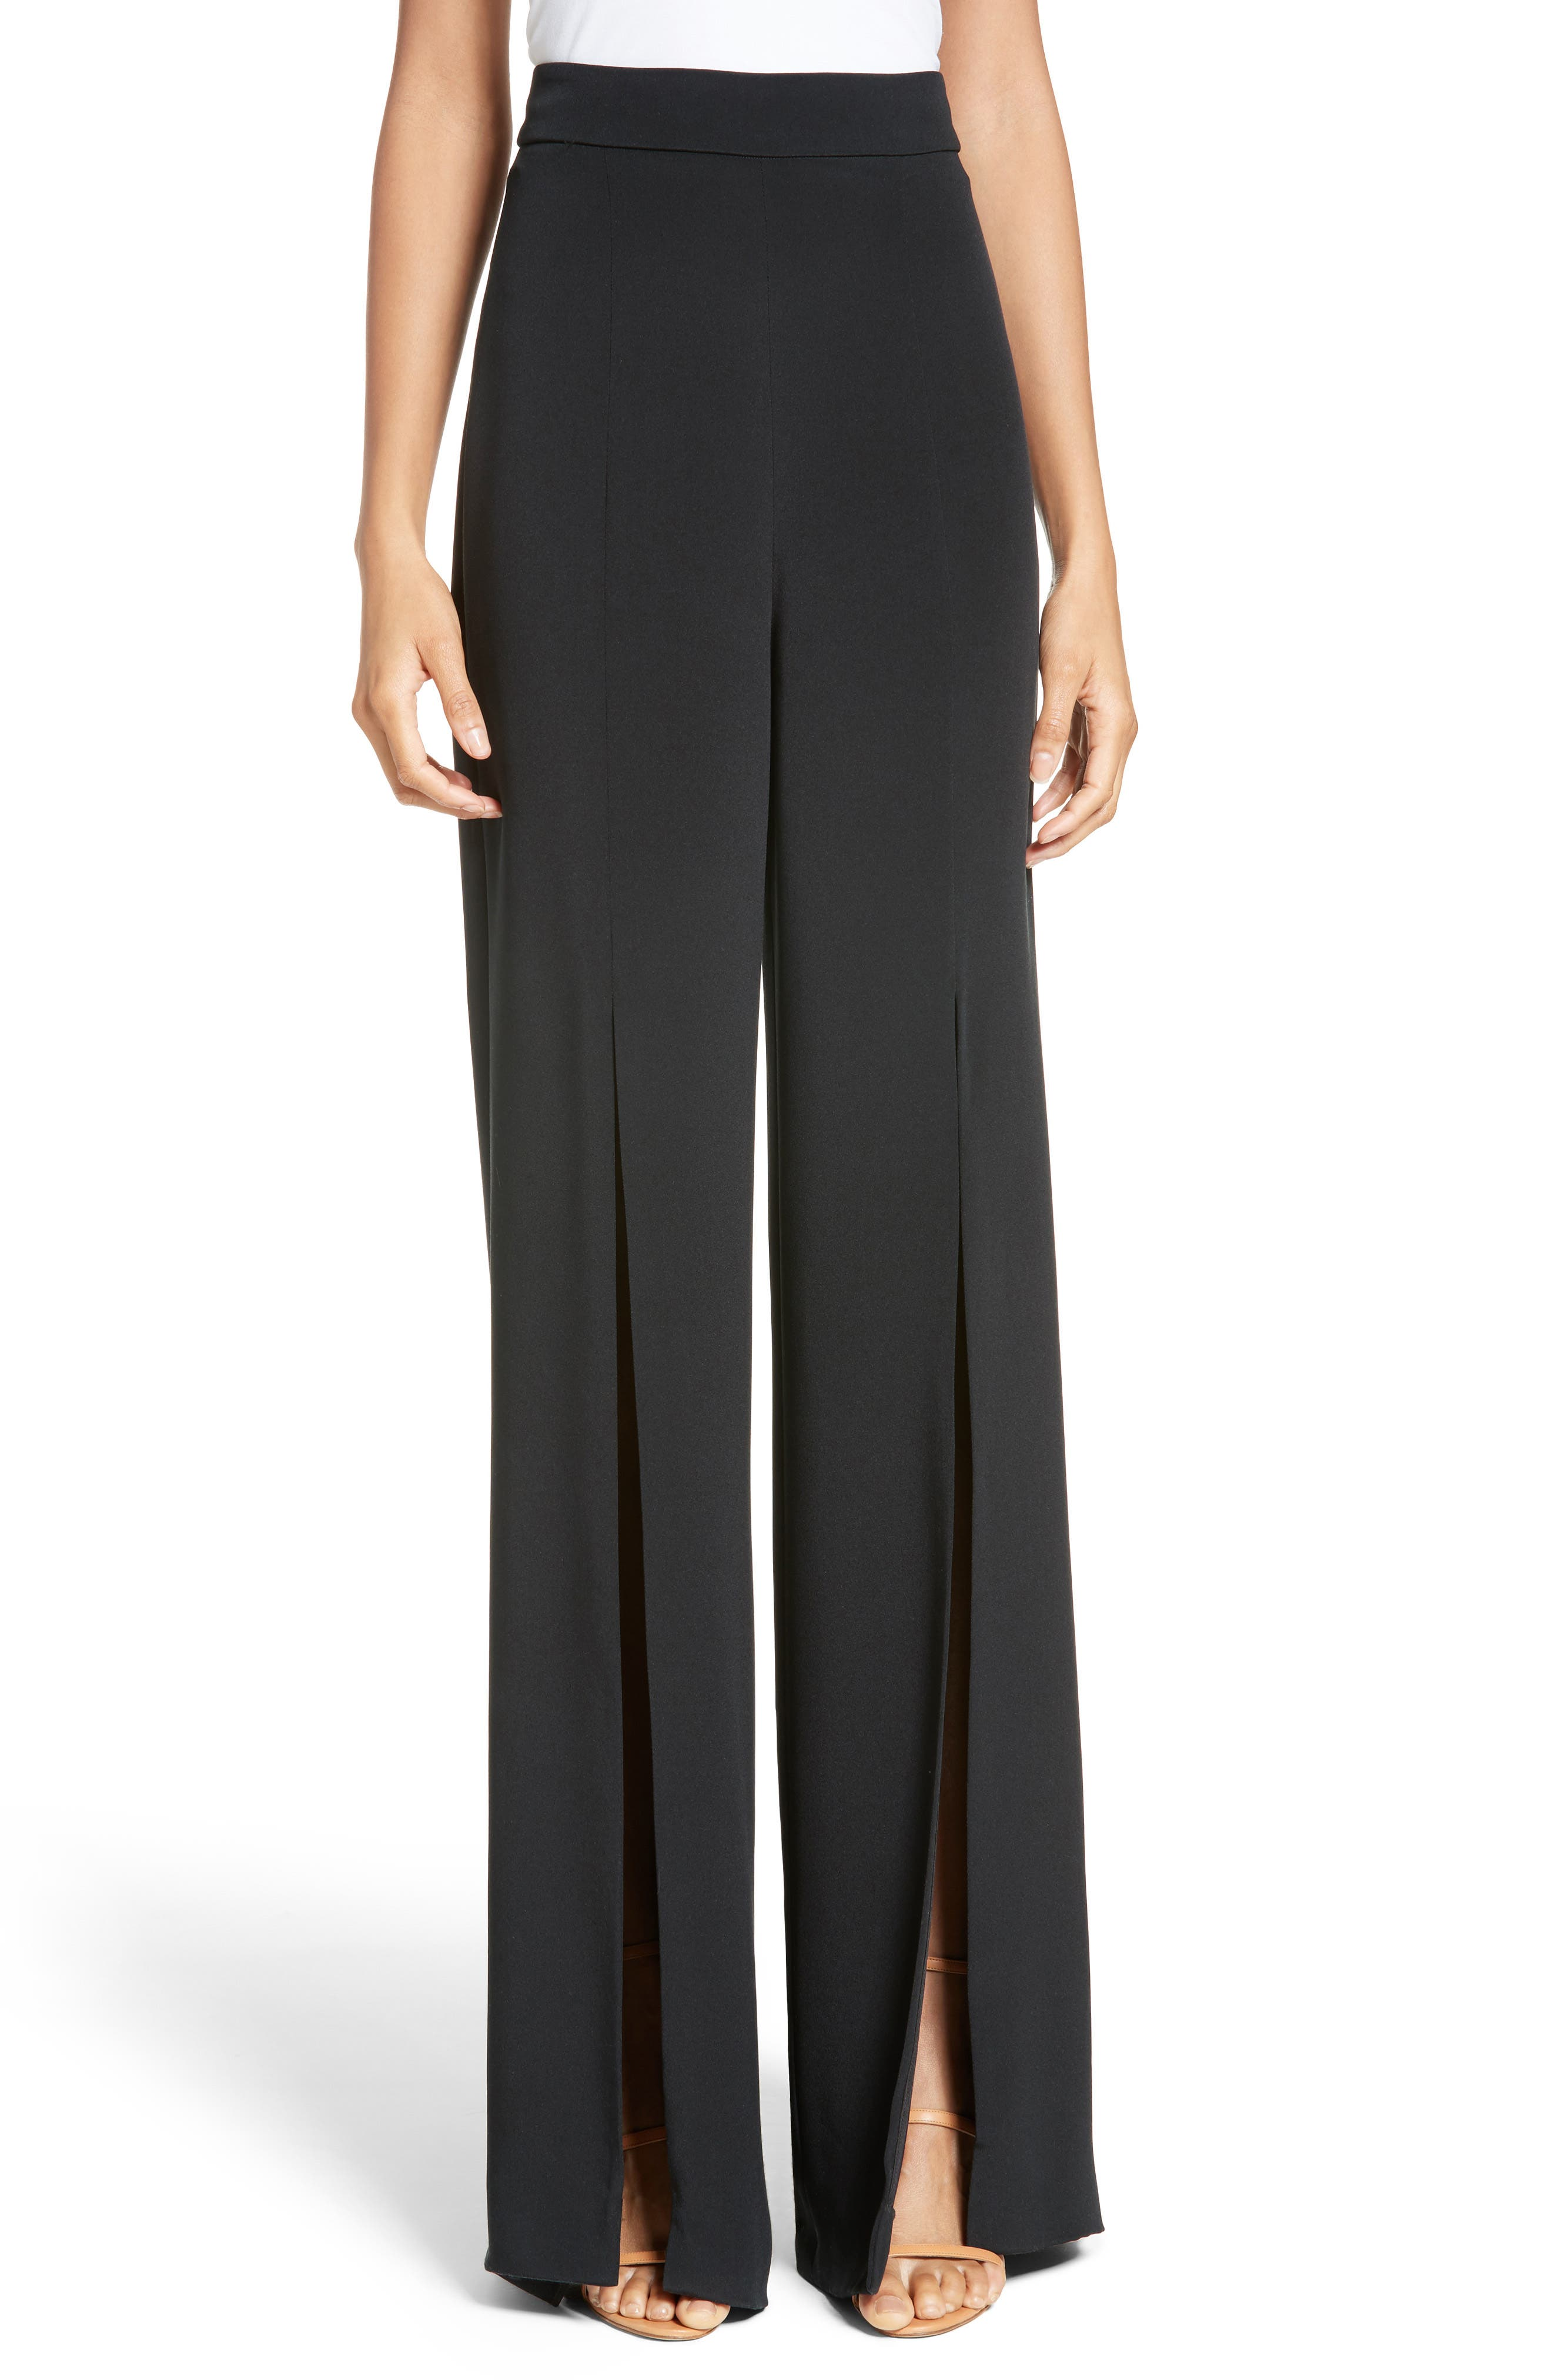 Slit Silk High Waisted Pants,                         Main,                         color, Black